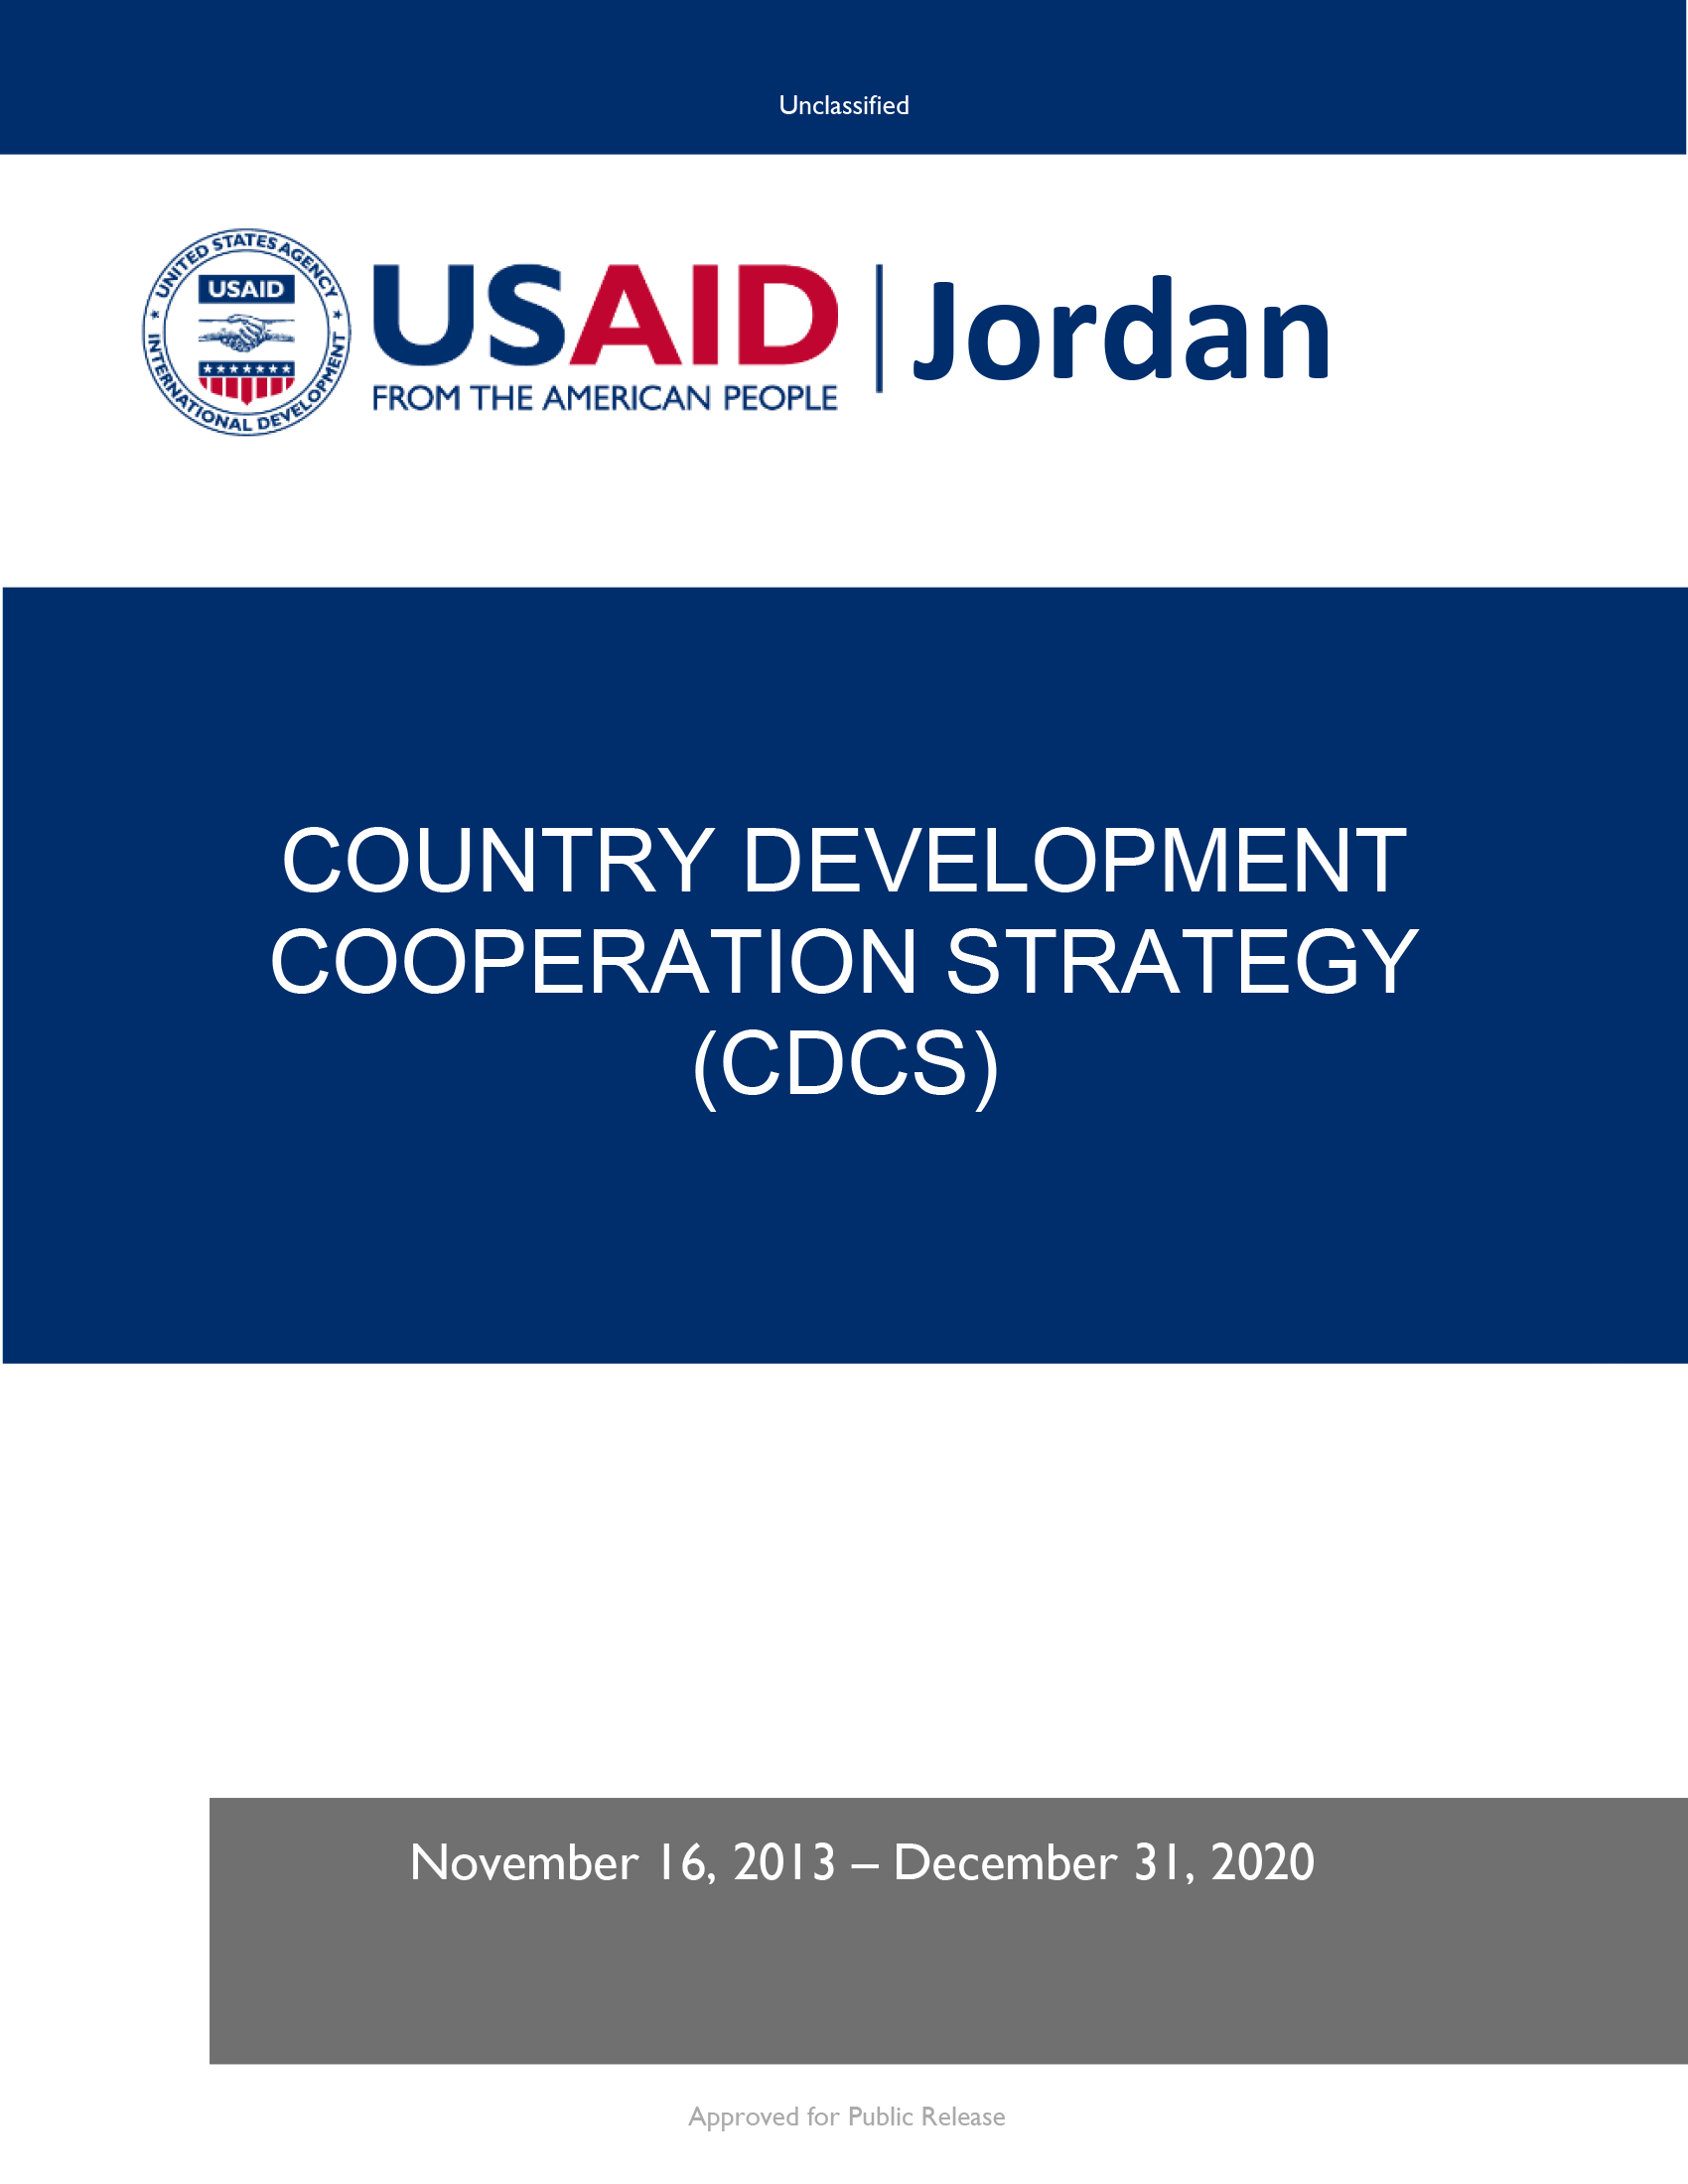 Jordan Country Development Cooperation Strategy 2013-2020